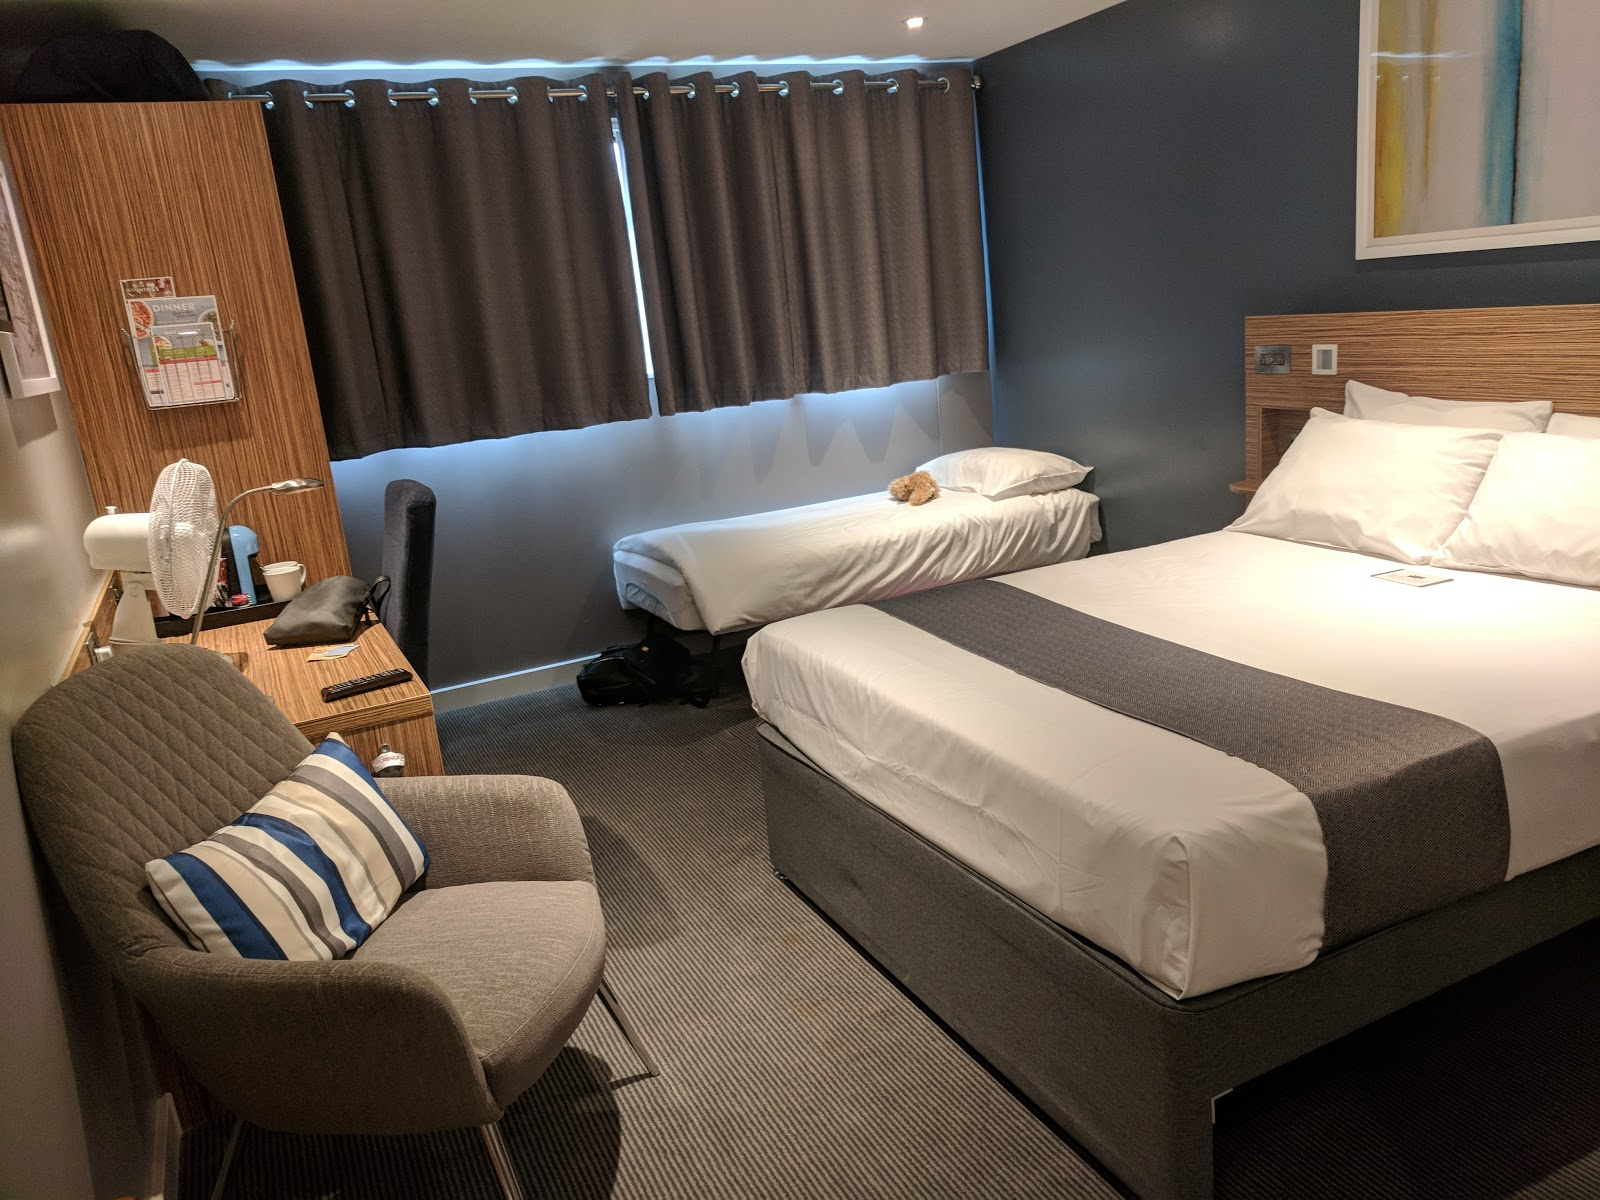 A Short Stay in Windsor with Kids  - travelodge windsor bedroom